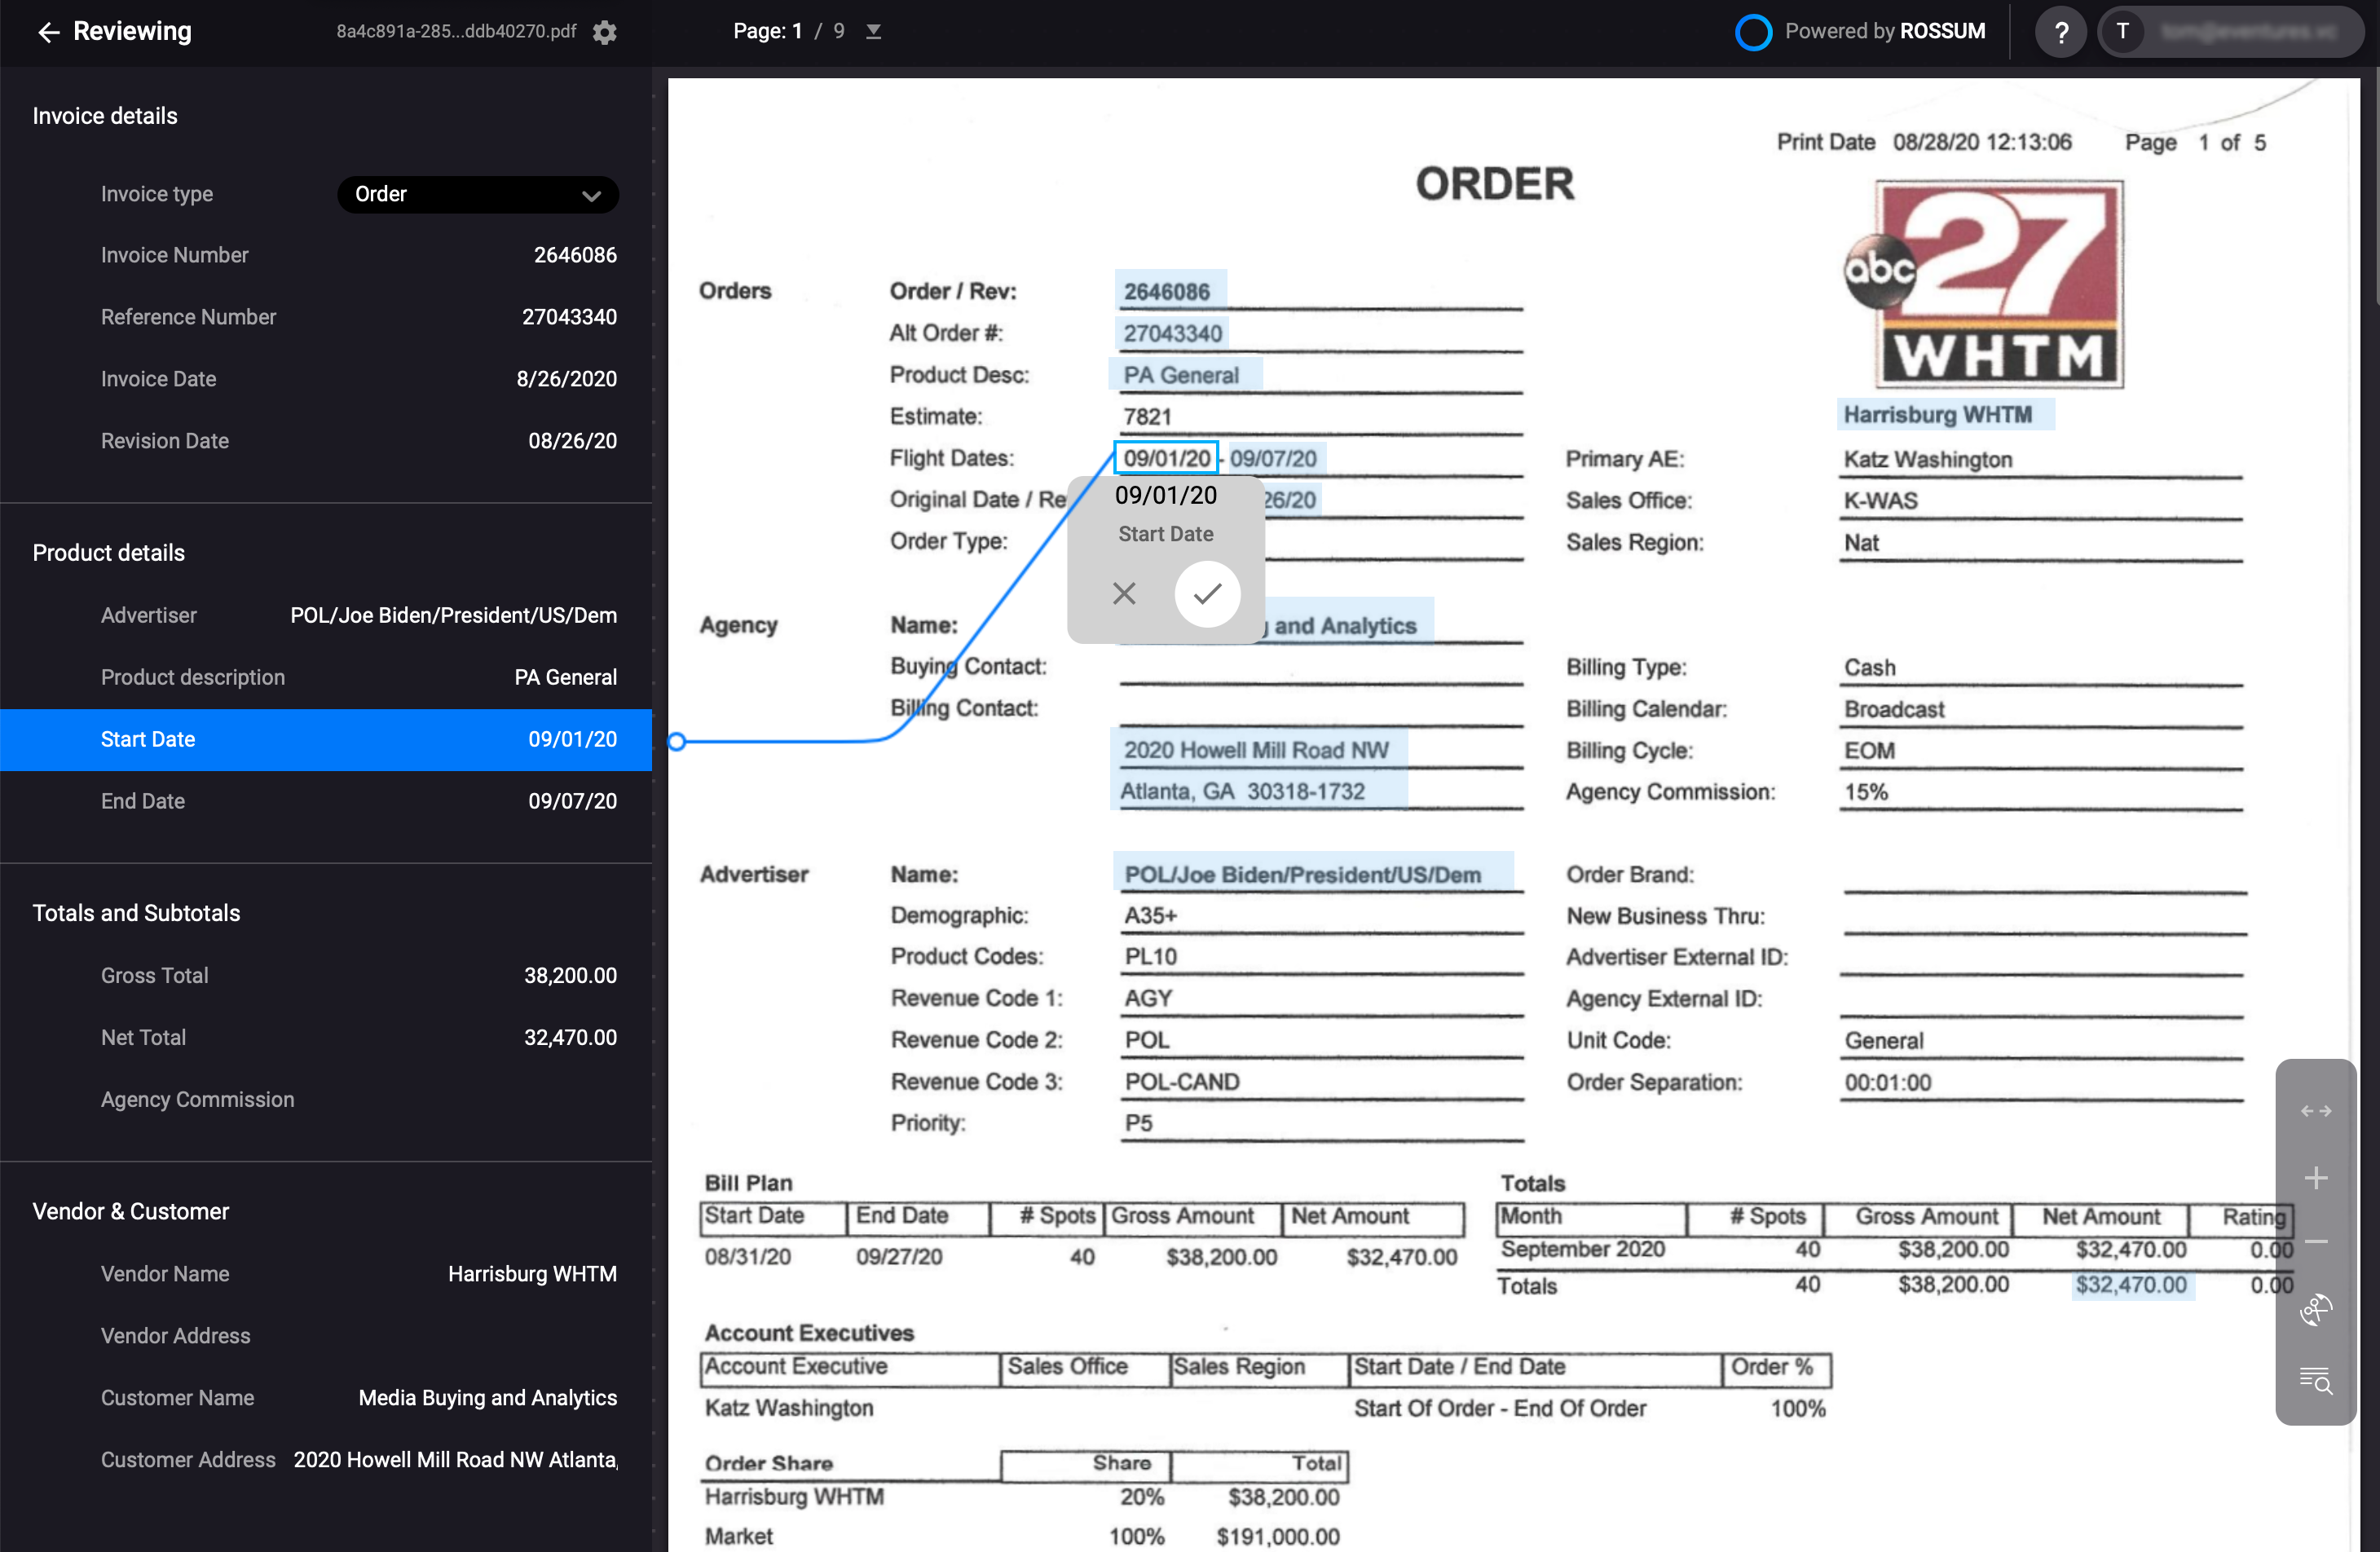 Rossum.ai user interface while annotating the flight start date of an order